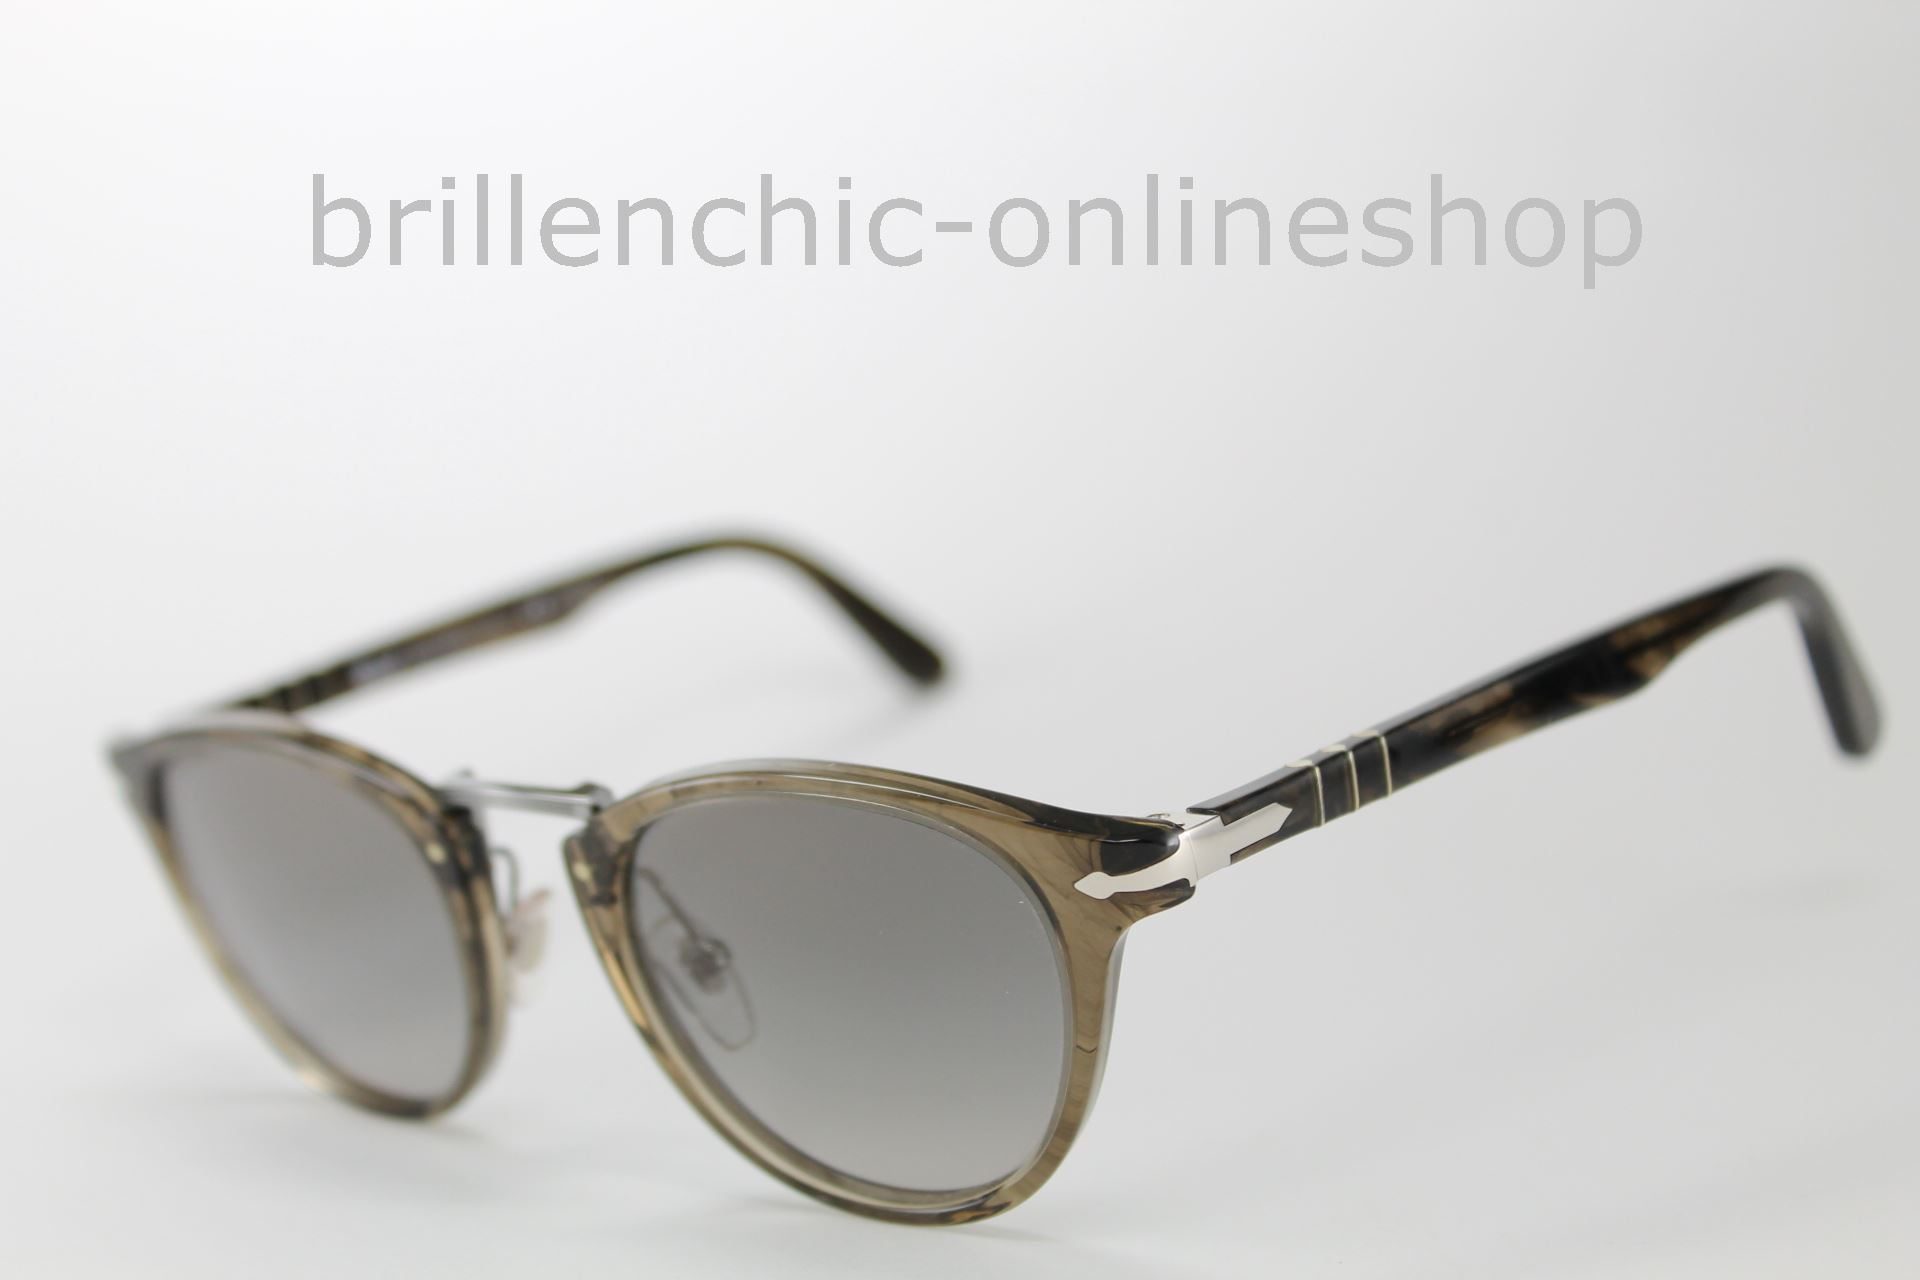 3268a7a36c Brillenchic-onlineshop in Berlin - Persol PO 3108S 3108 1019 M3 ...